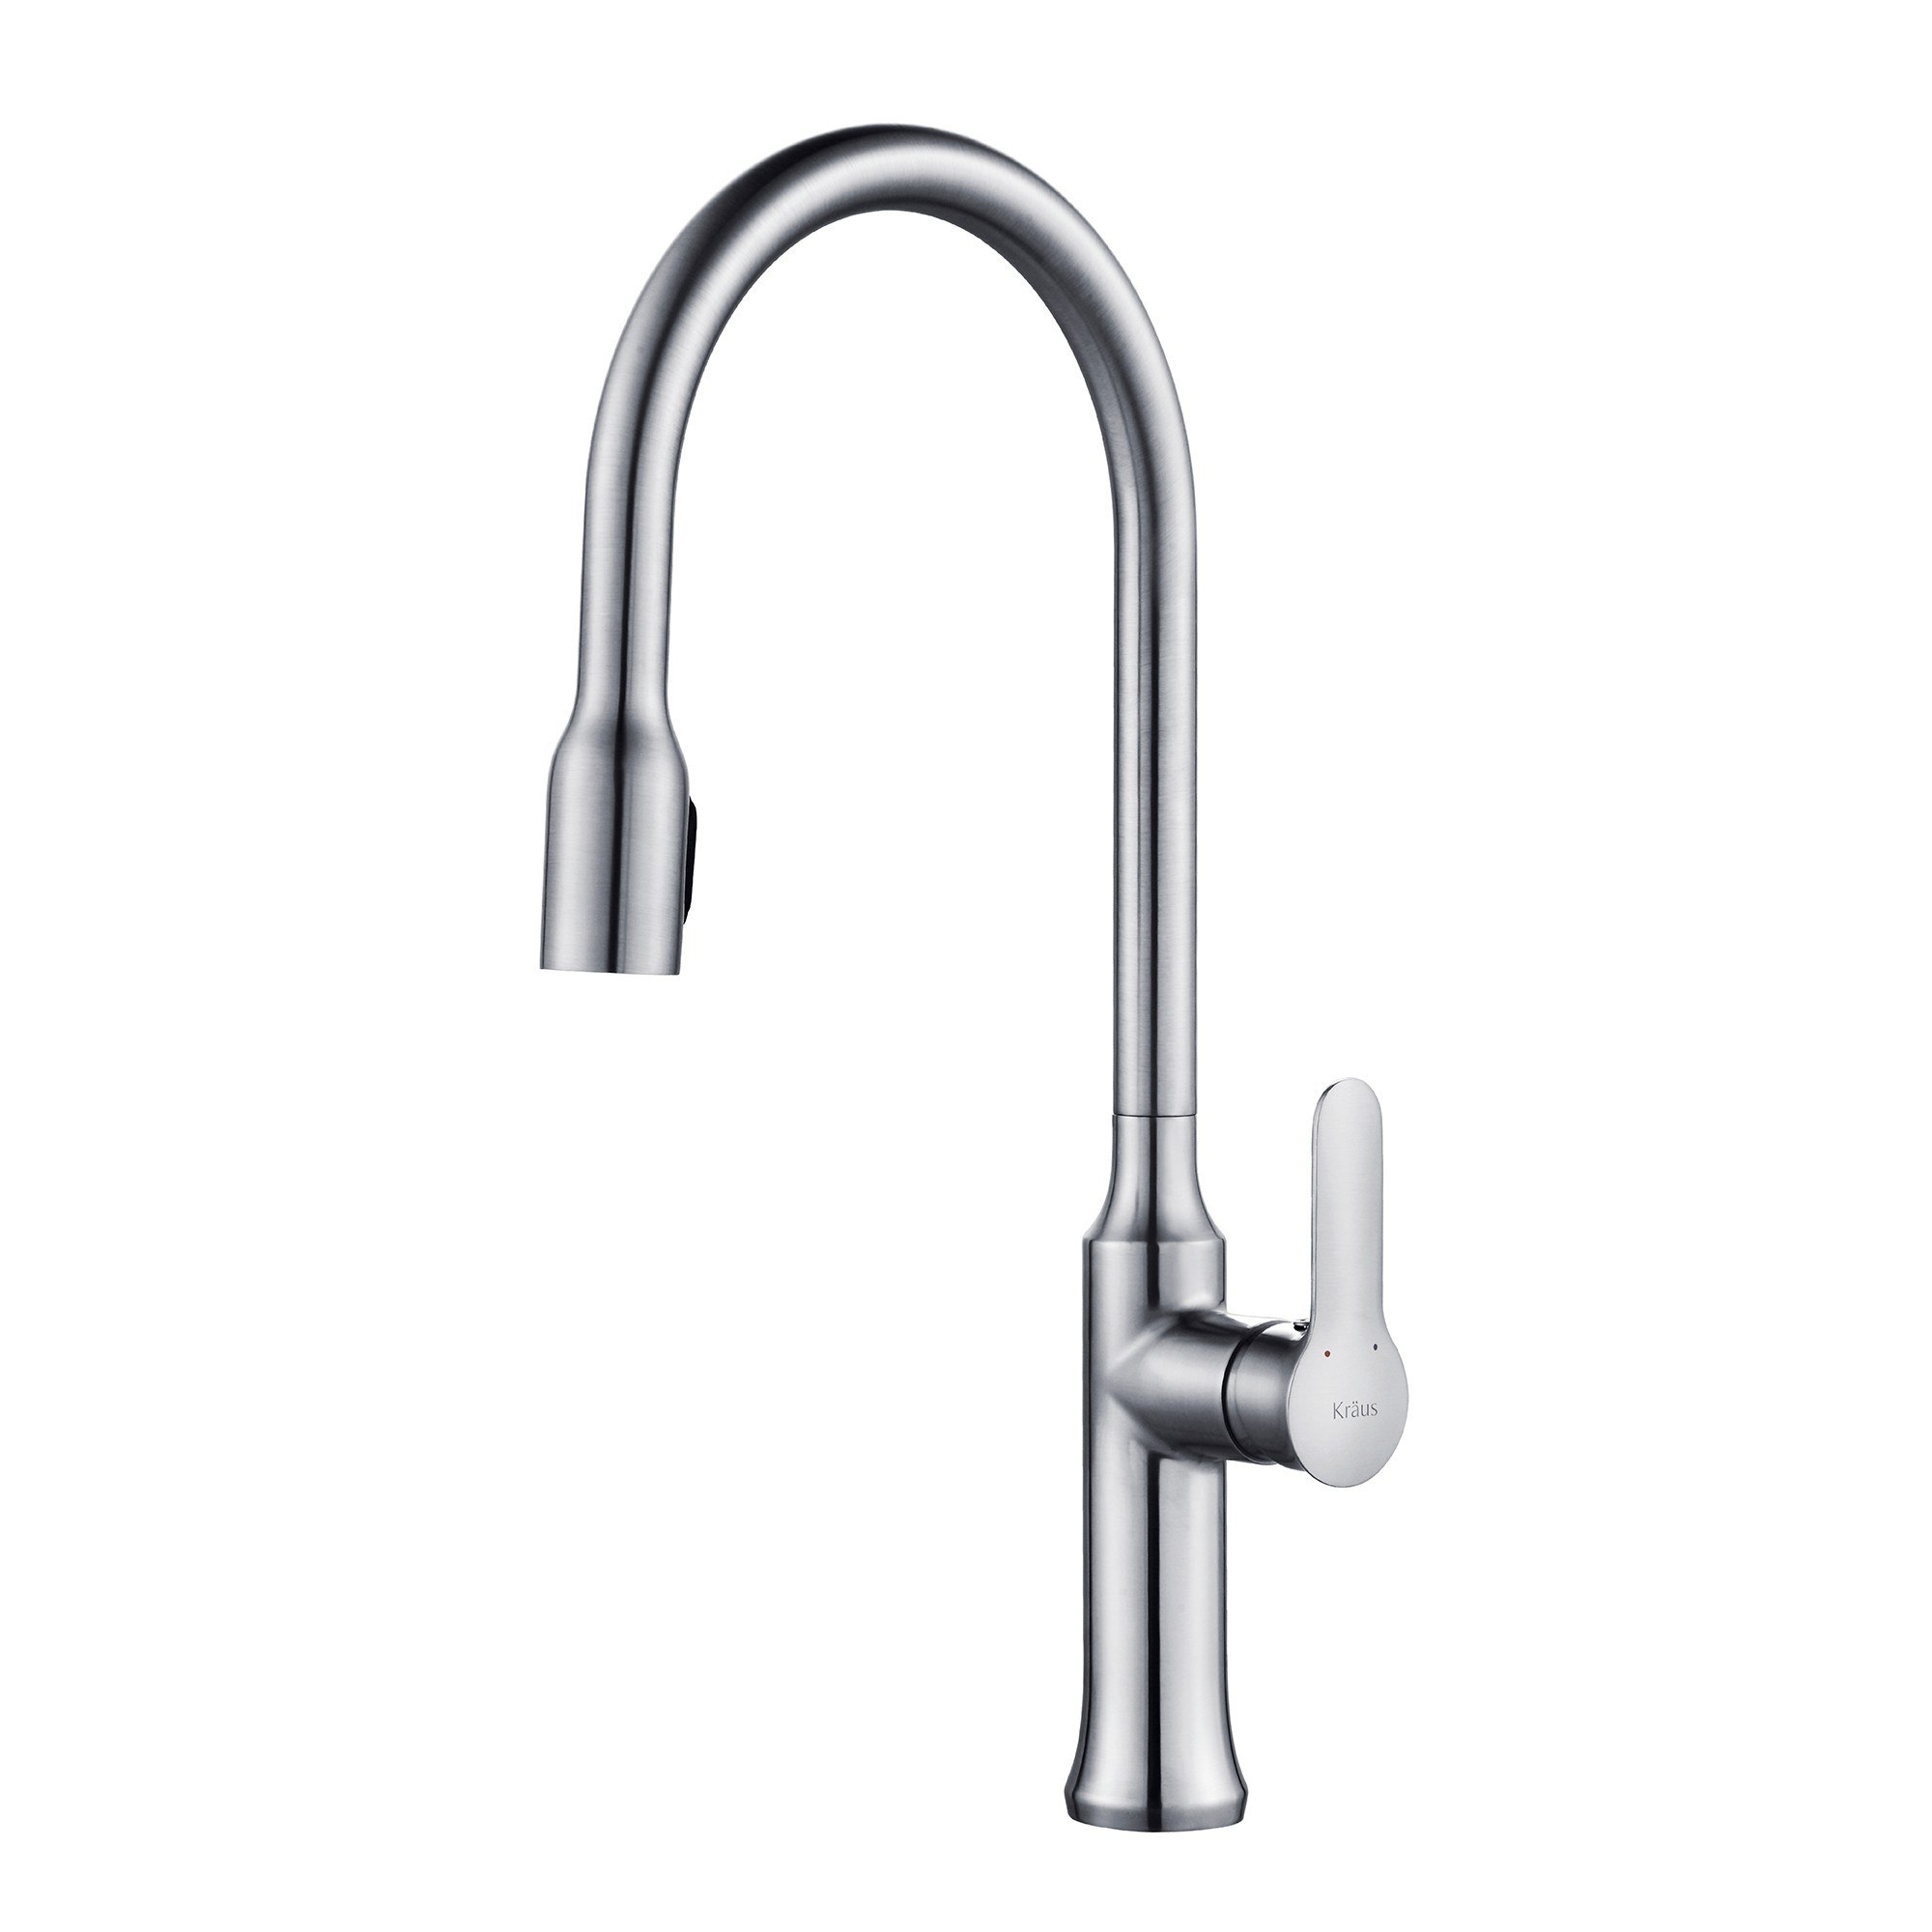 Kraus Brand Review : Kraus KPF-1660 Nola? Single Lever Concealed Pull Down Kitchen Faucet ...